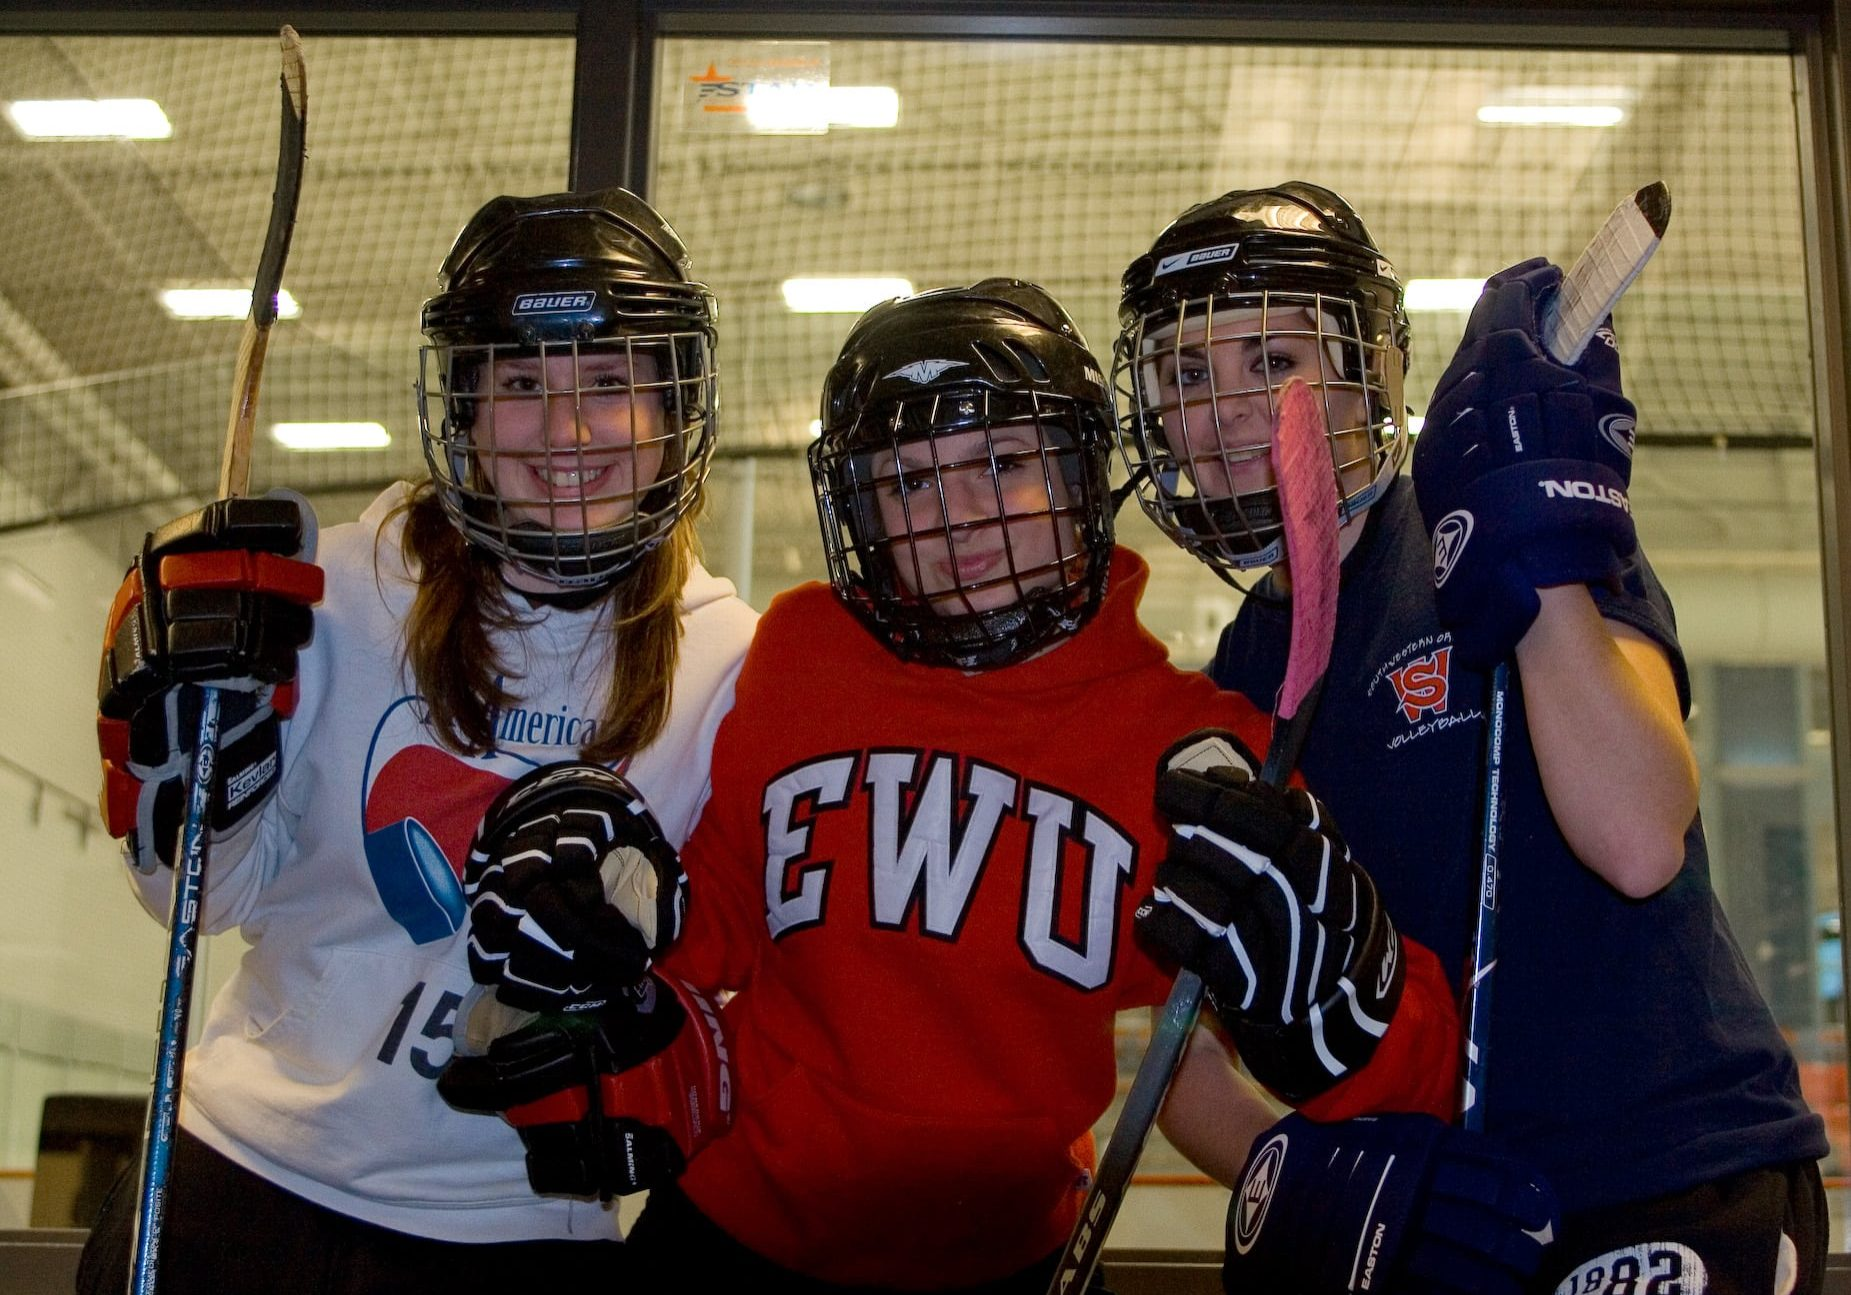 Baitlyn, Kayla, and Daitlin pose, wearing hockey gear, in front of the rec center's ice rink